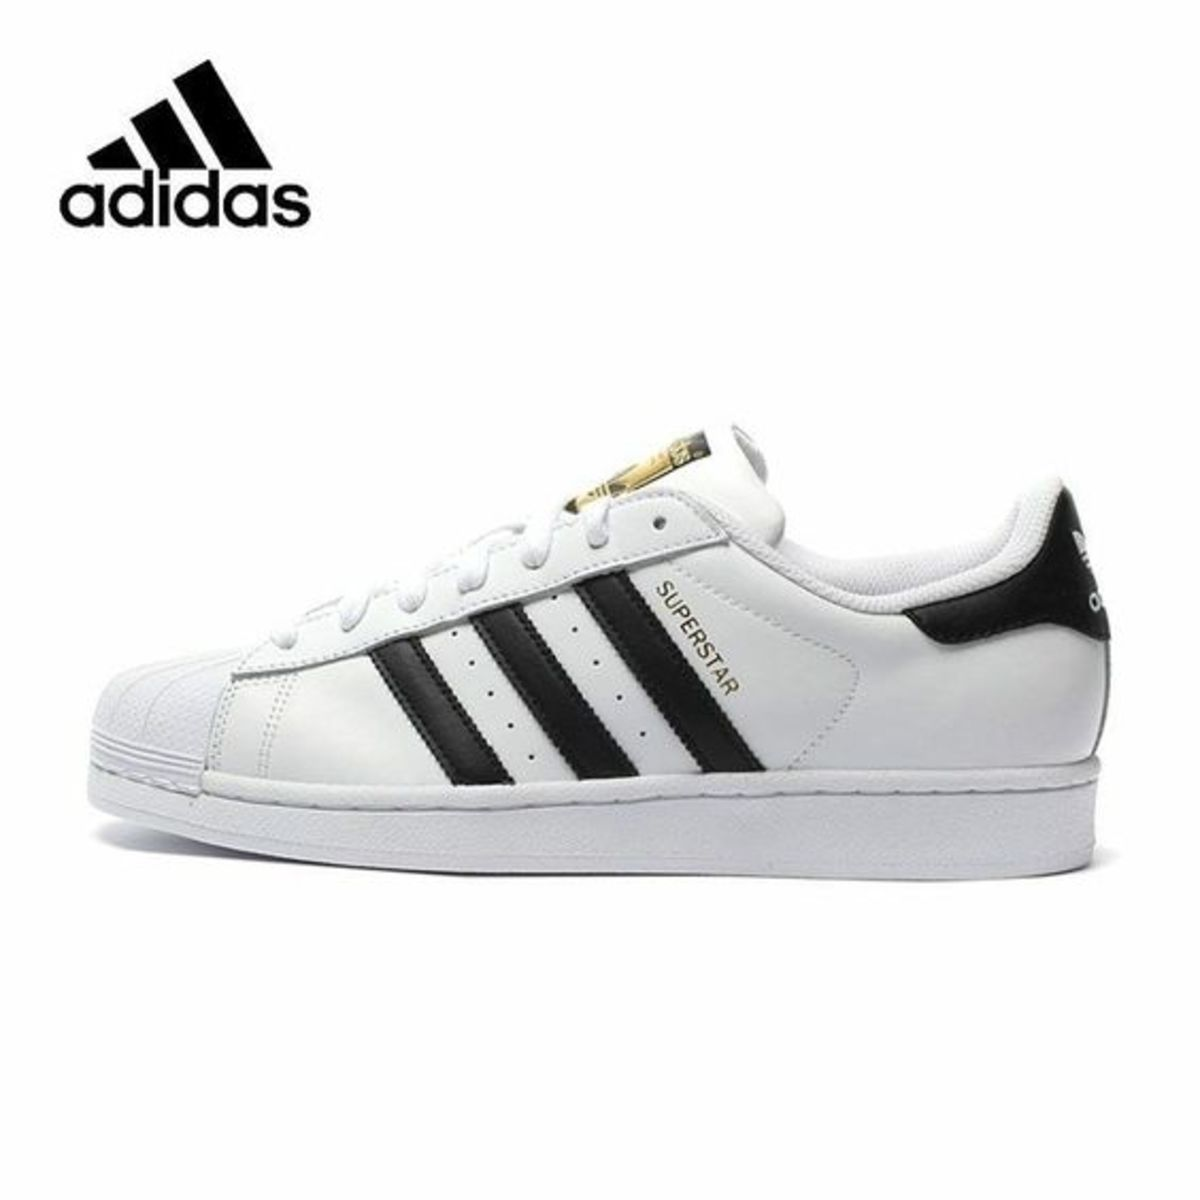 And you've probably seen these. With the rubber shell and all leather construction, no wonder people liked to skate these. The Adidas Superstars even got an Alexander Wang makeover, so maybe they're a little adept at skating.